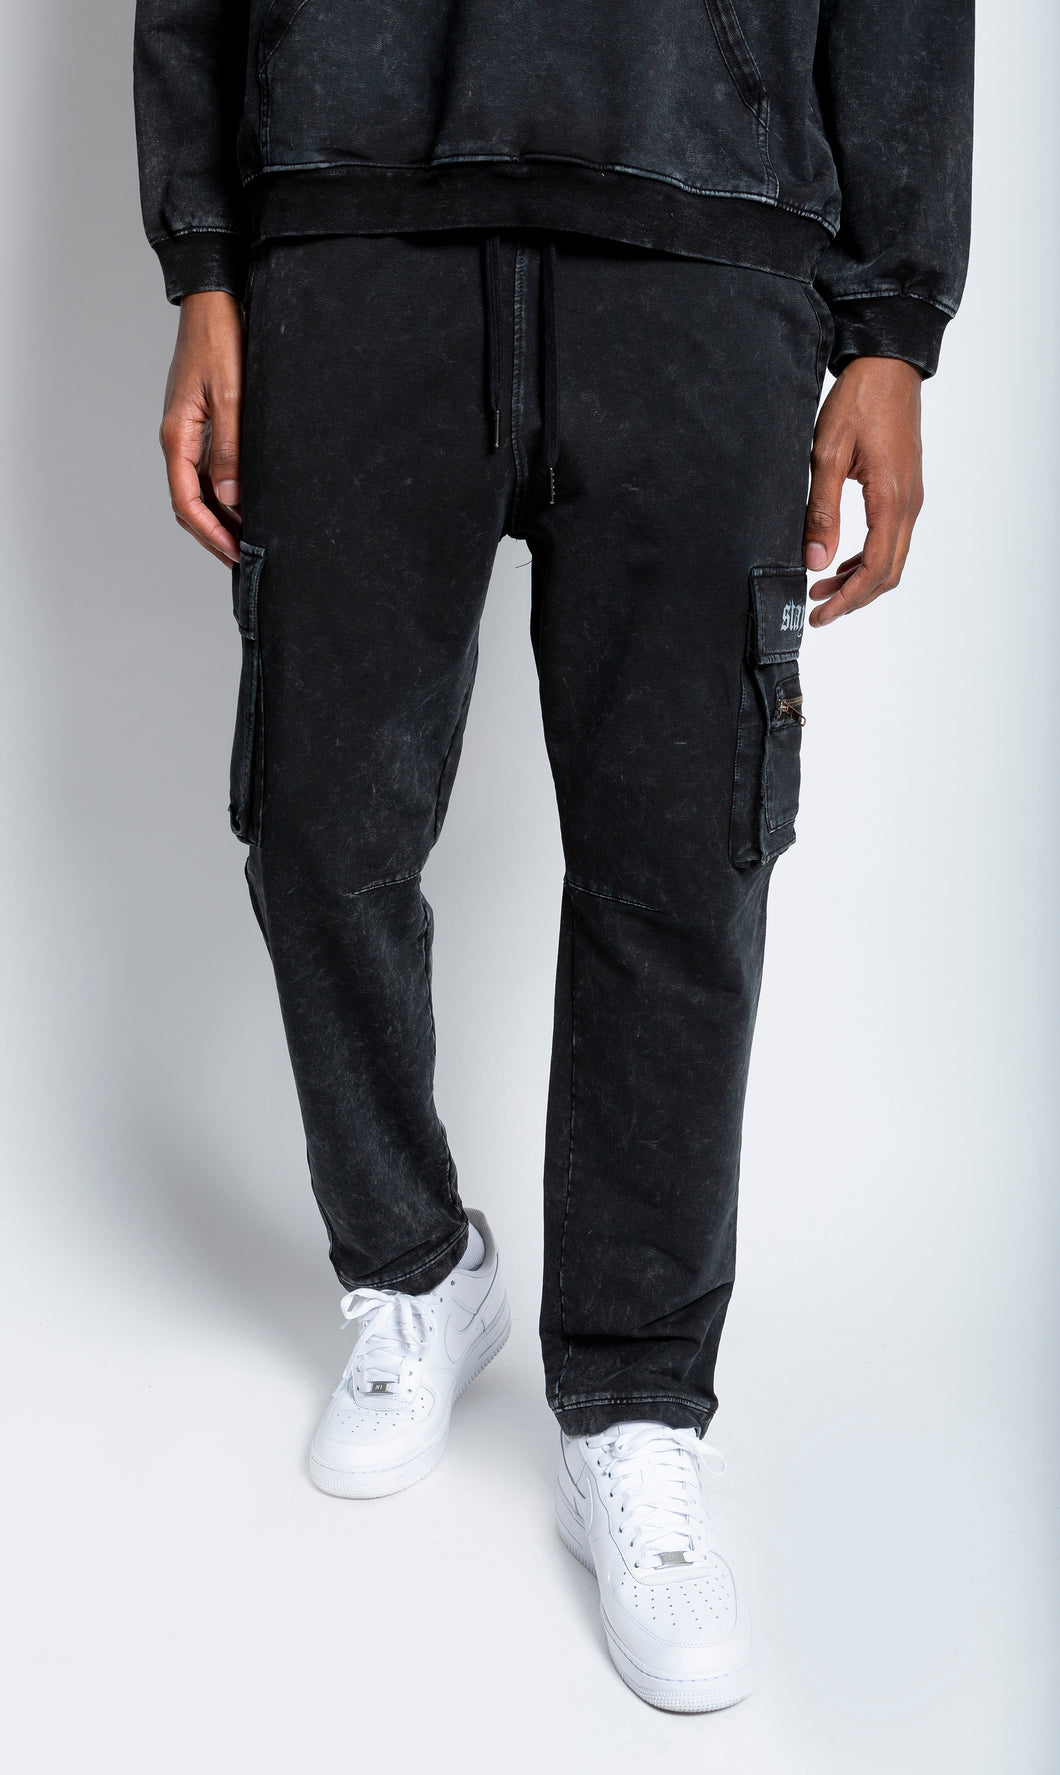 Black Mineral Wash Cargo Sweatpants